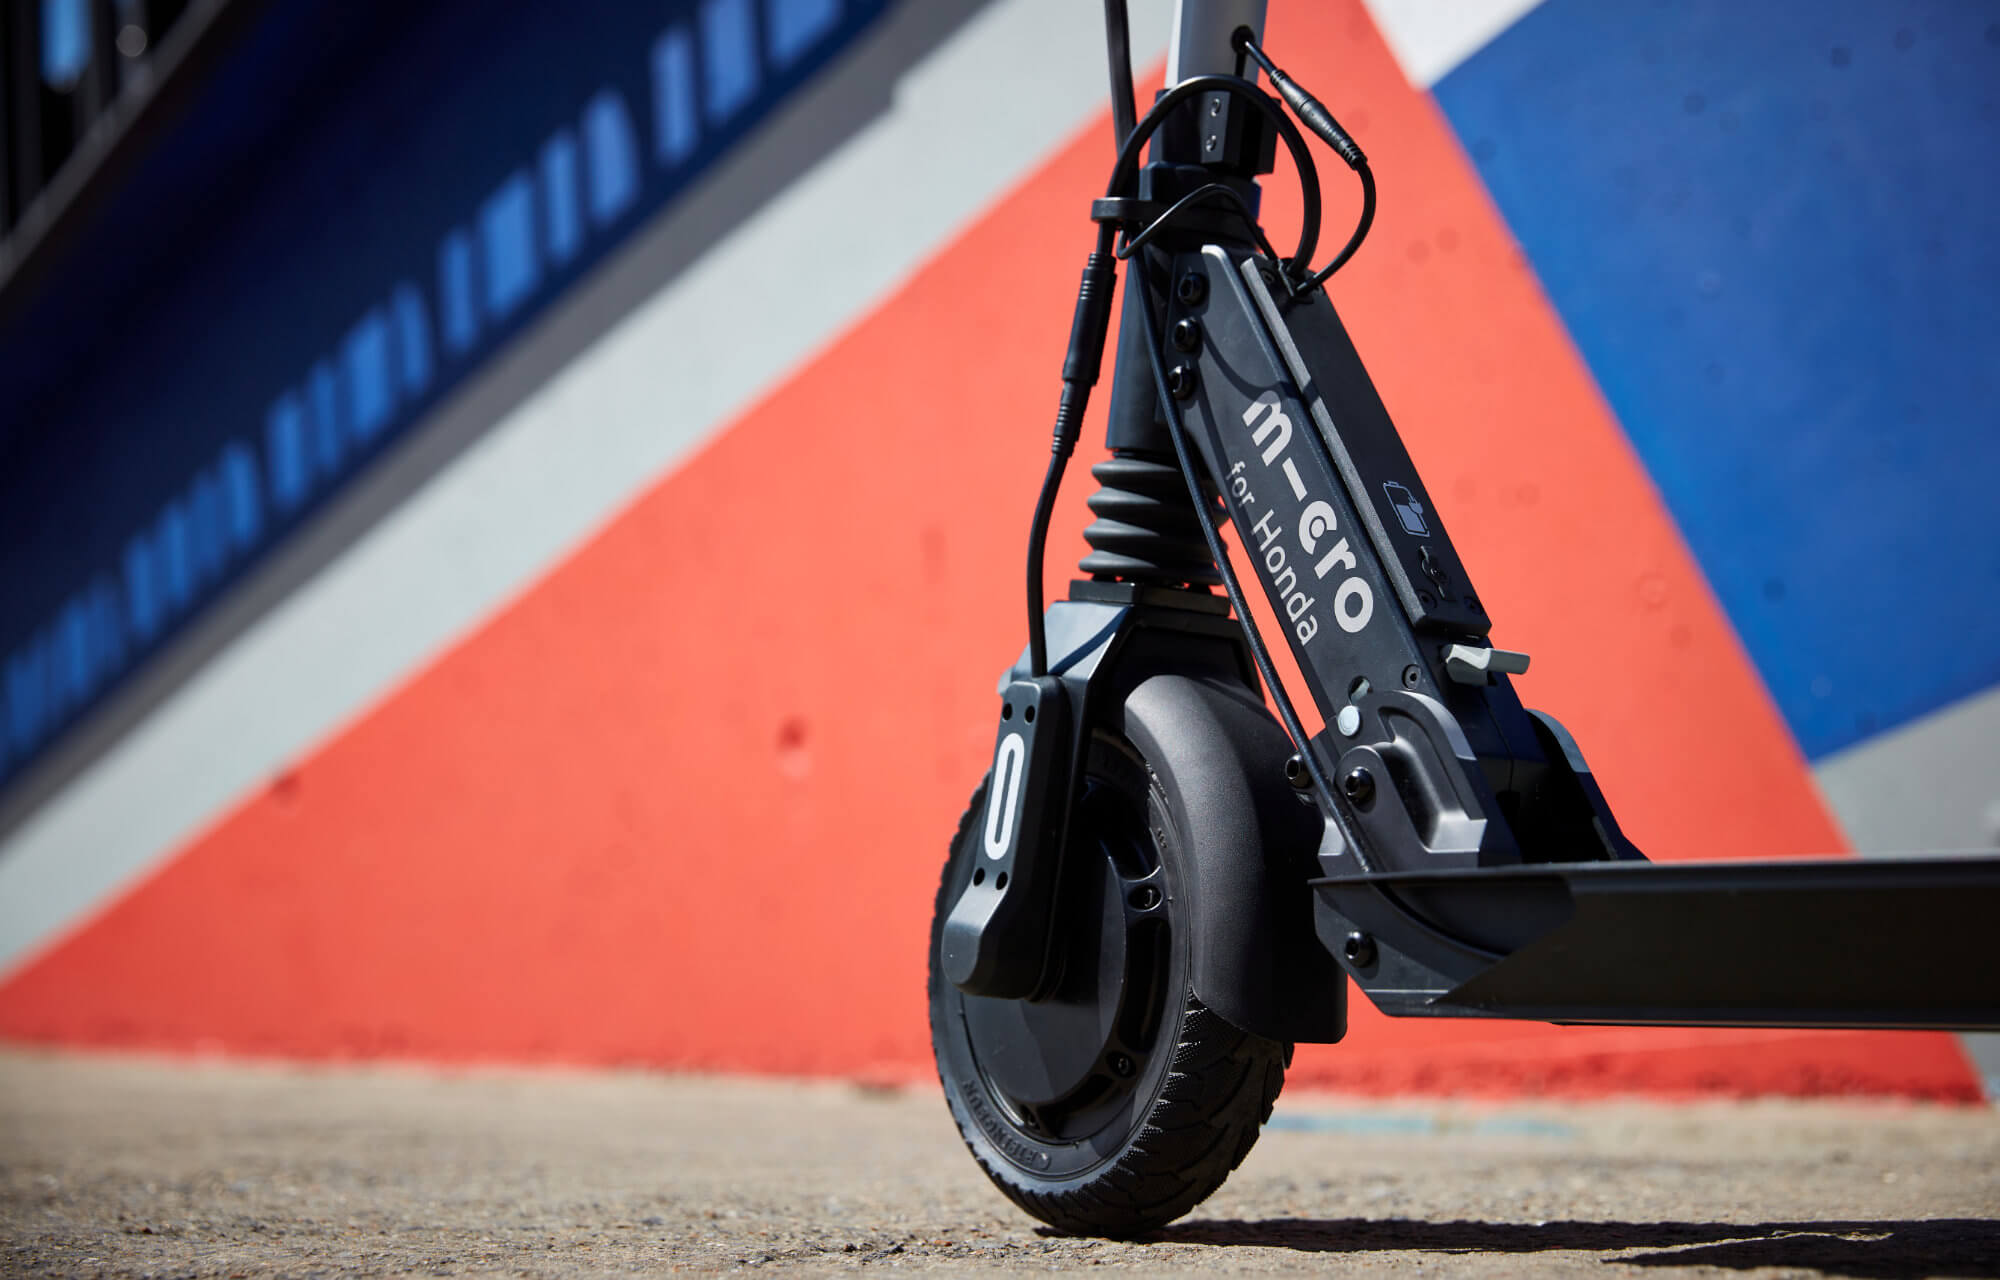 Discover the eSYMO e-Kick Scooter available now